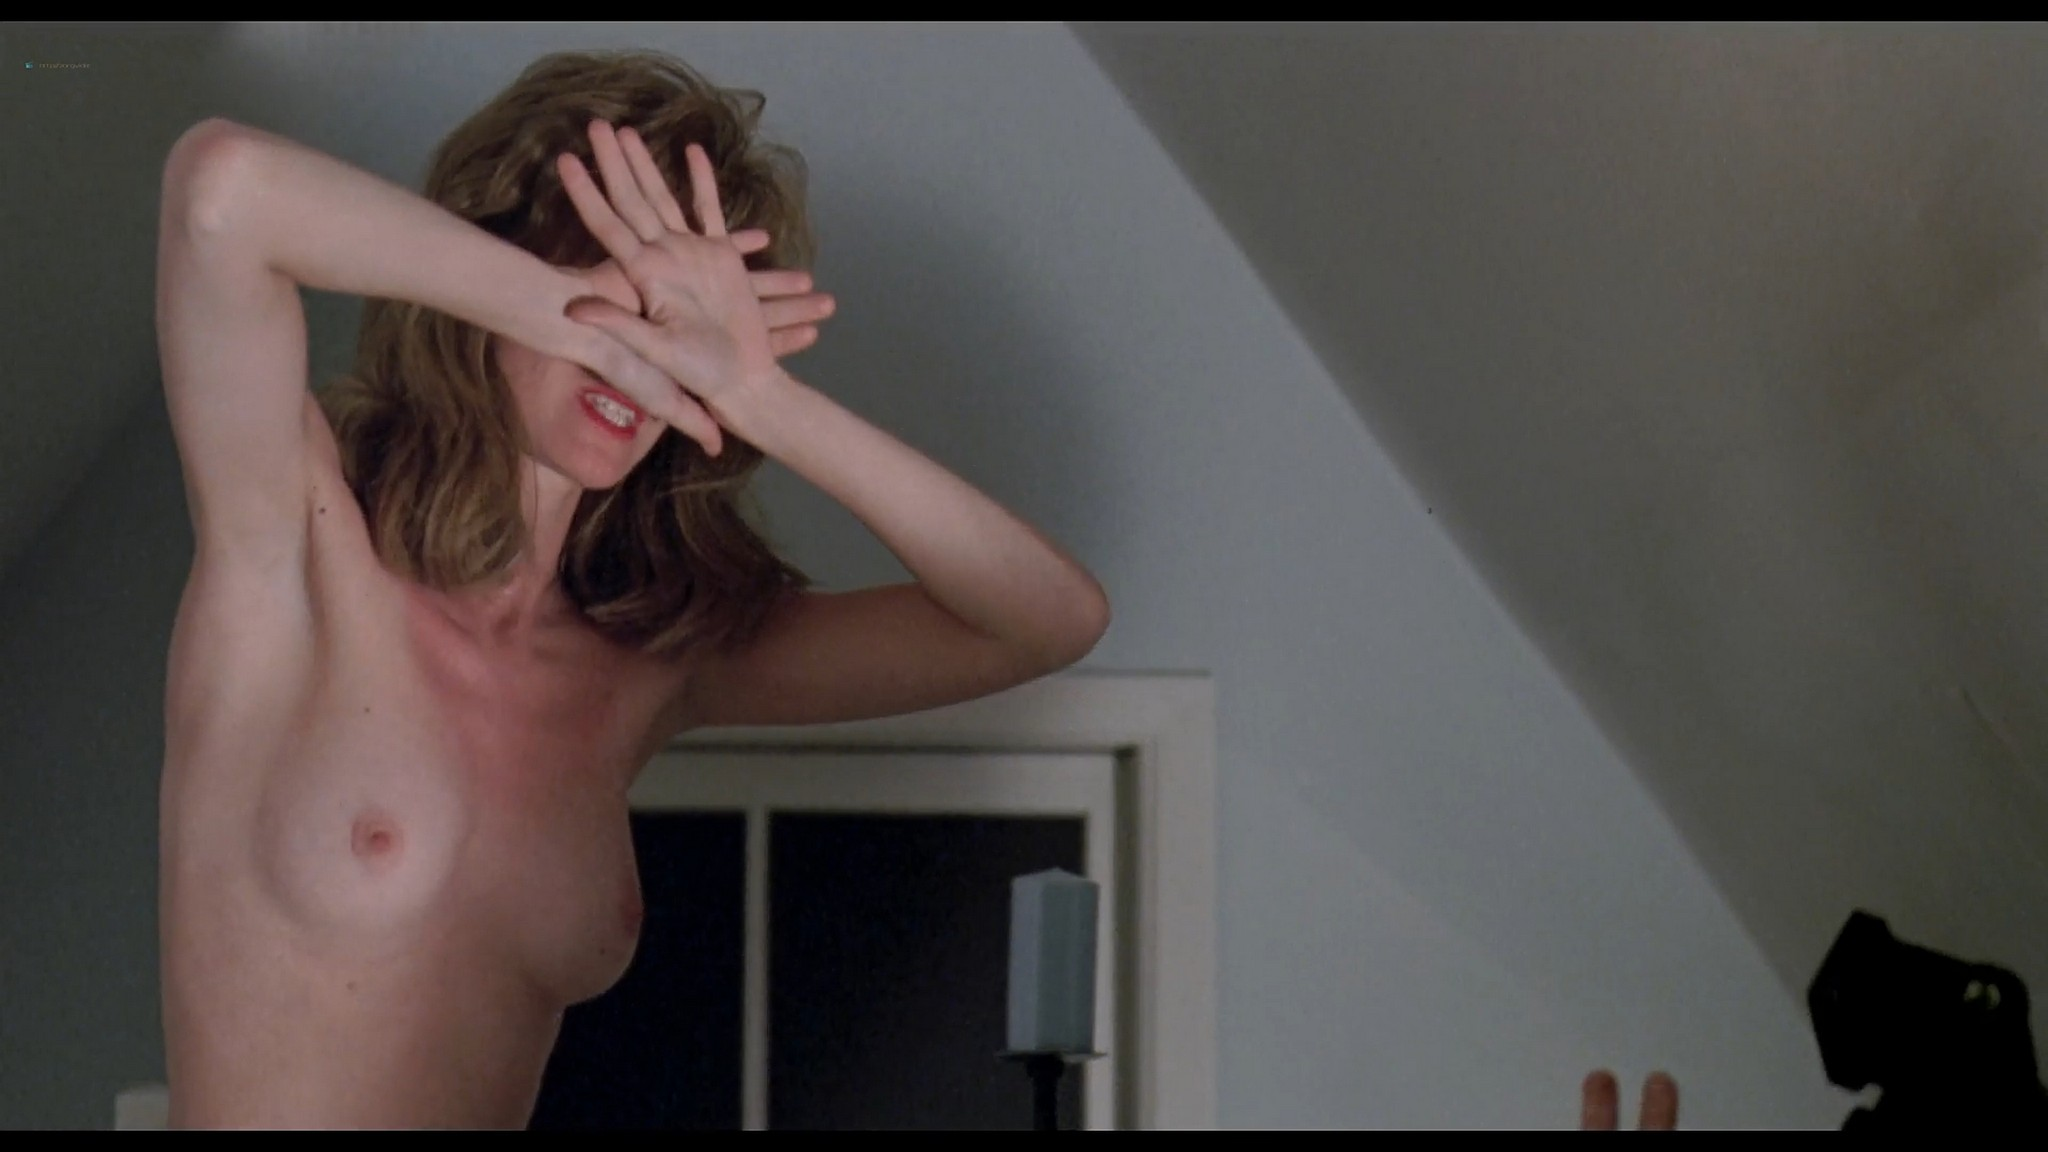 Sean Young nude full frontal Fern Dorsey and others nude Love Crimes 1992 1080p Web